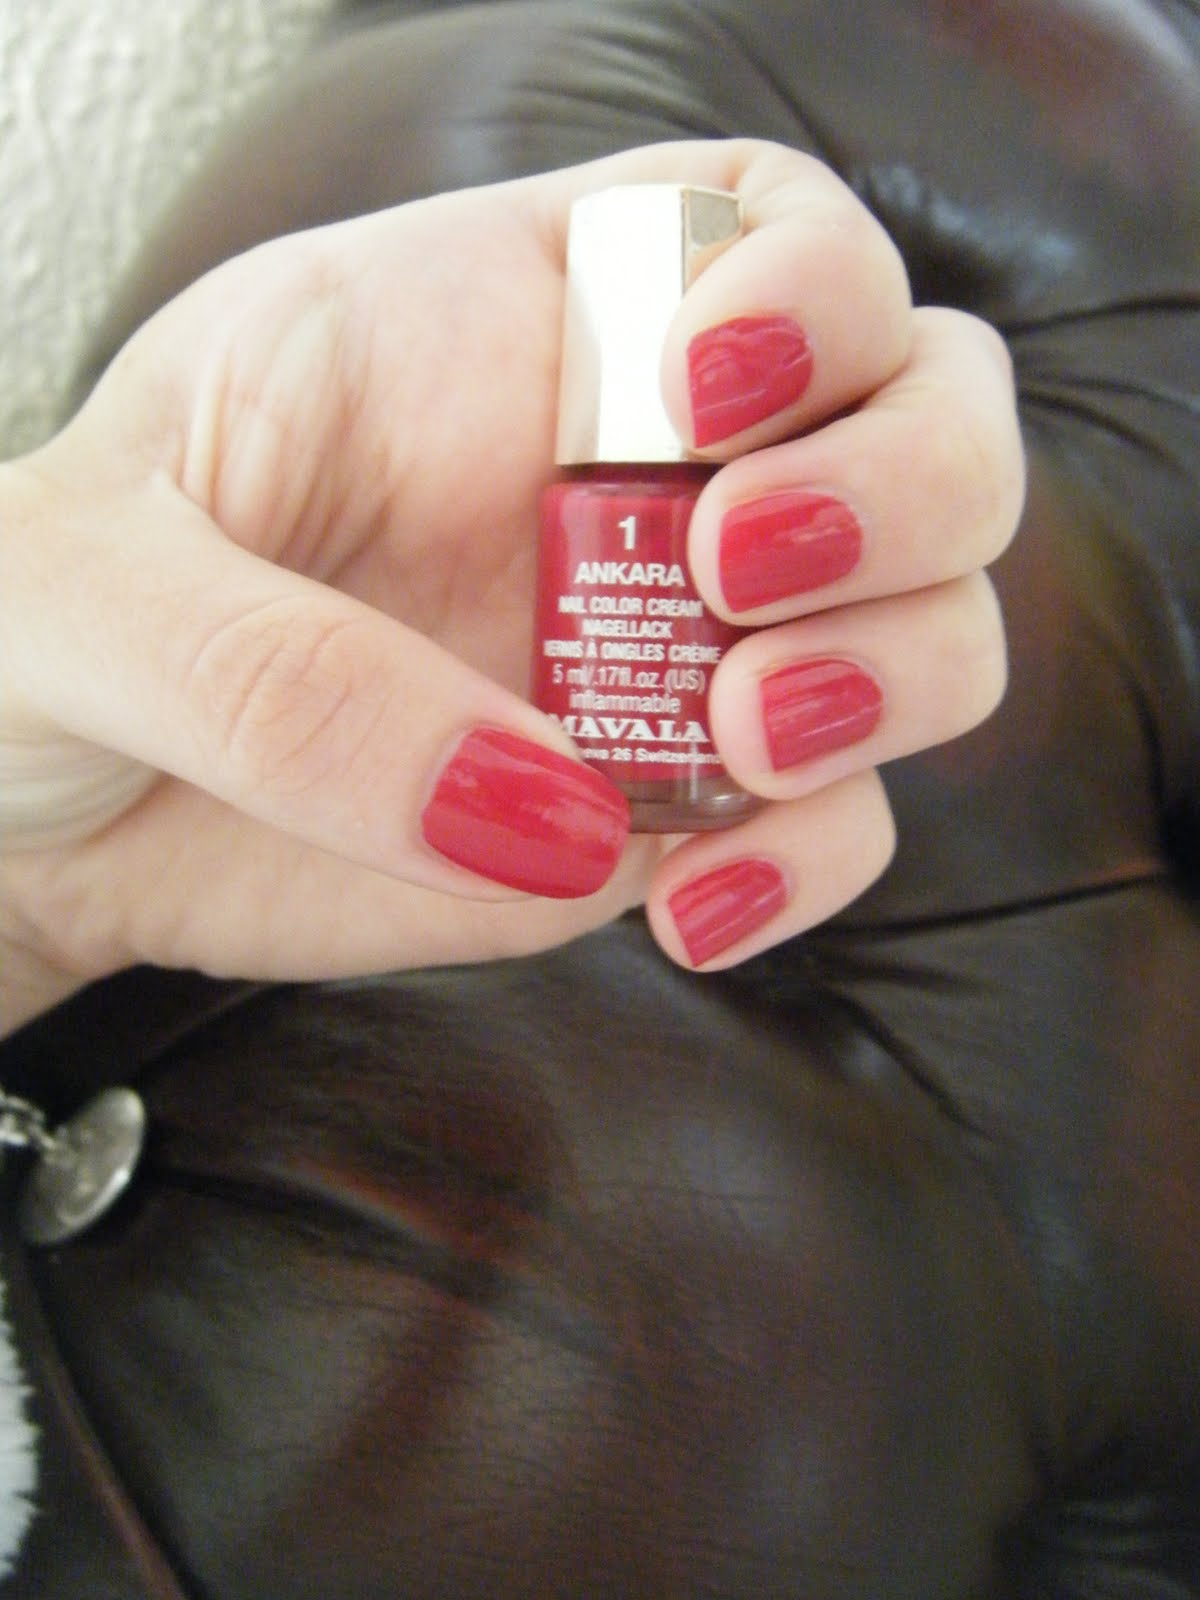 Are you a fan of Mavala polishes? What are your favourite shades?